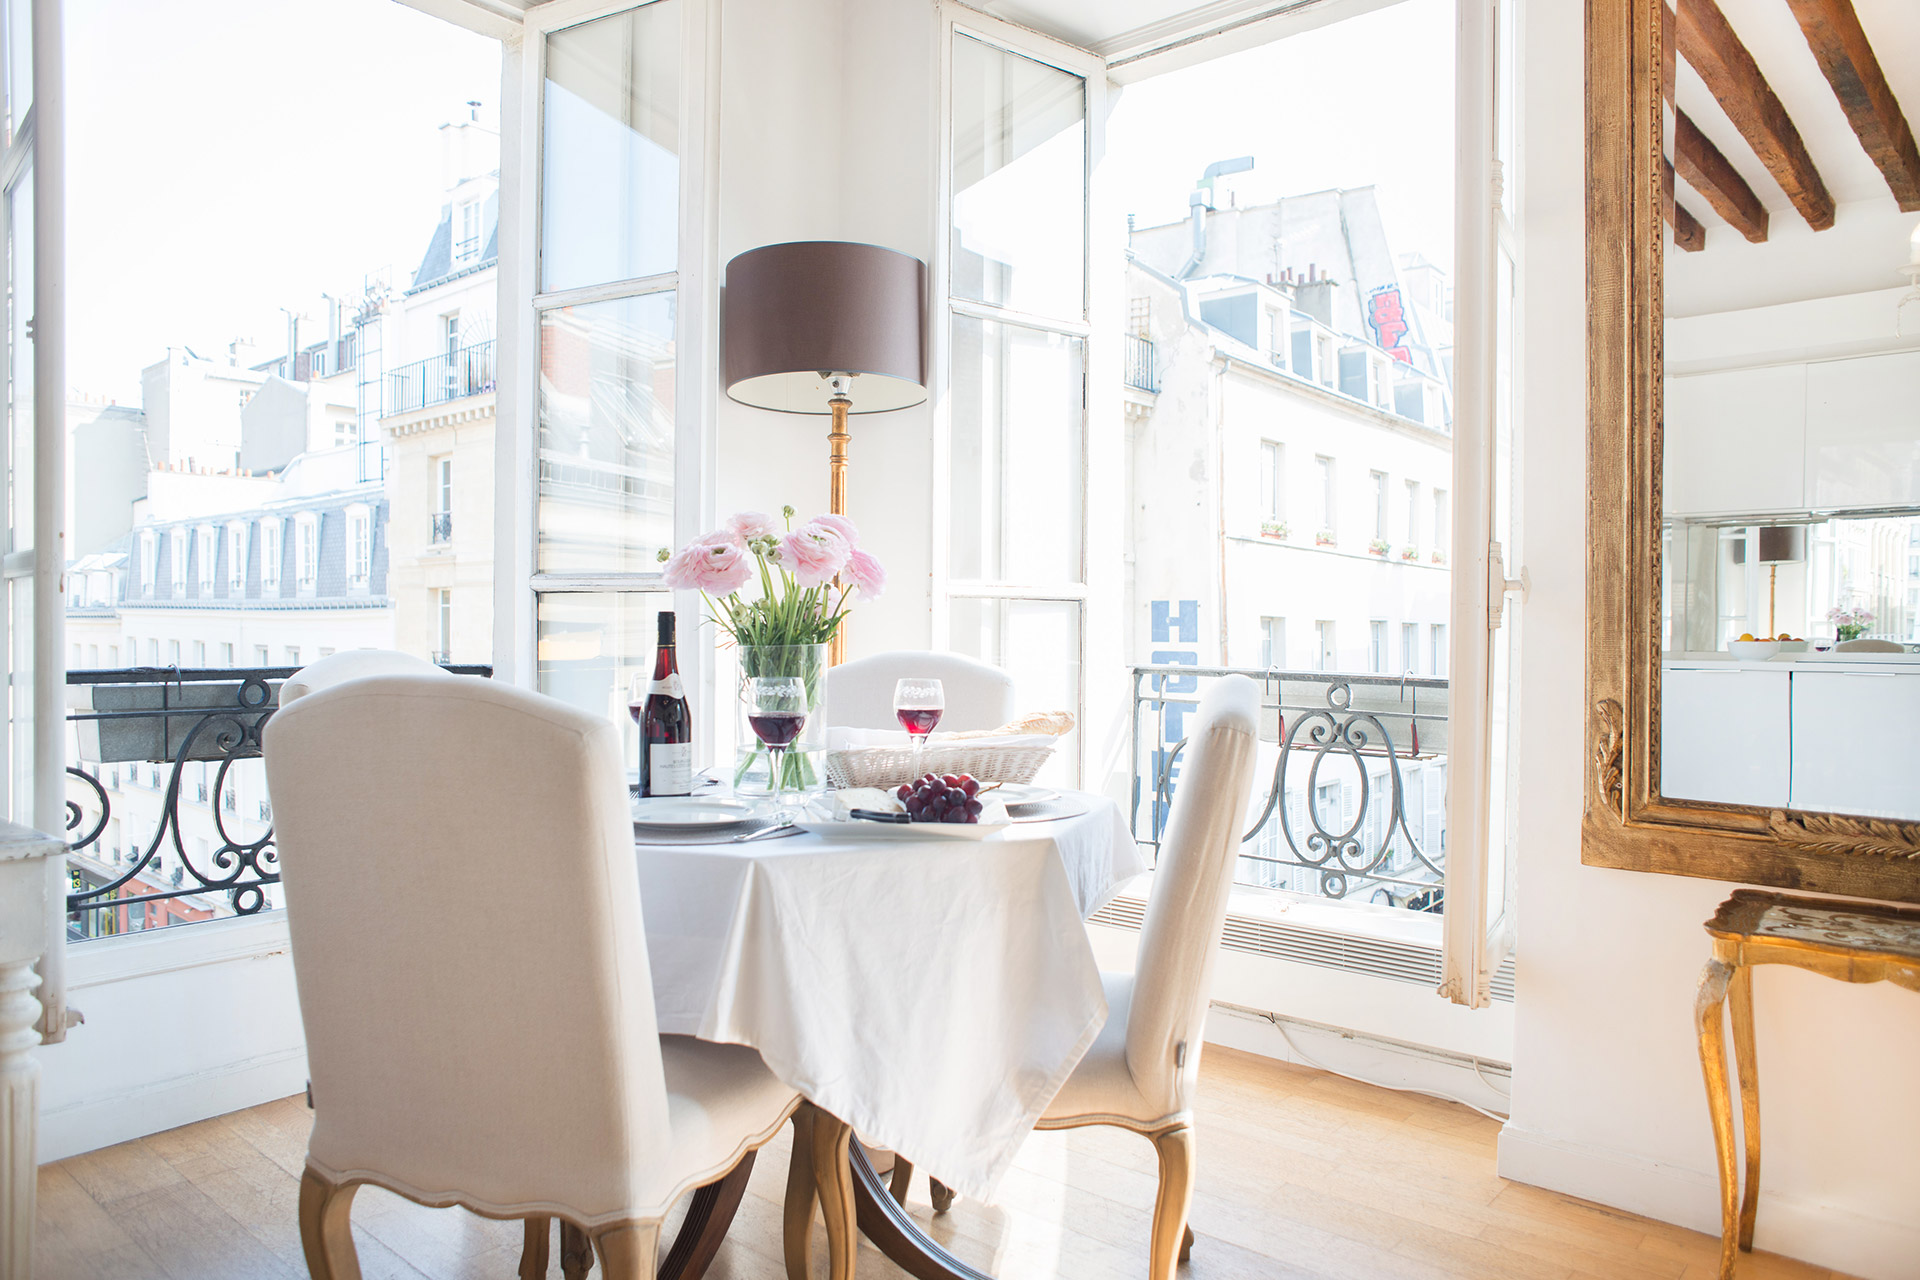 Dining table in the Forez vacation rental offered by Paris Perfect